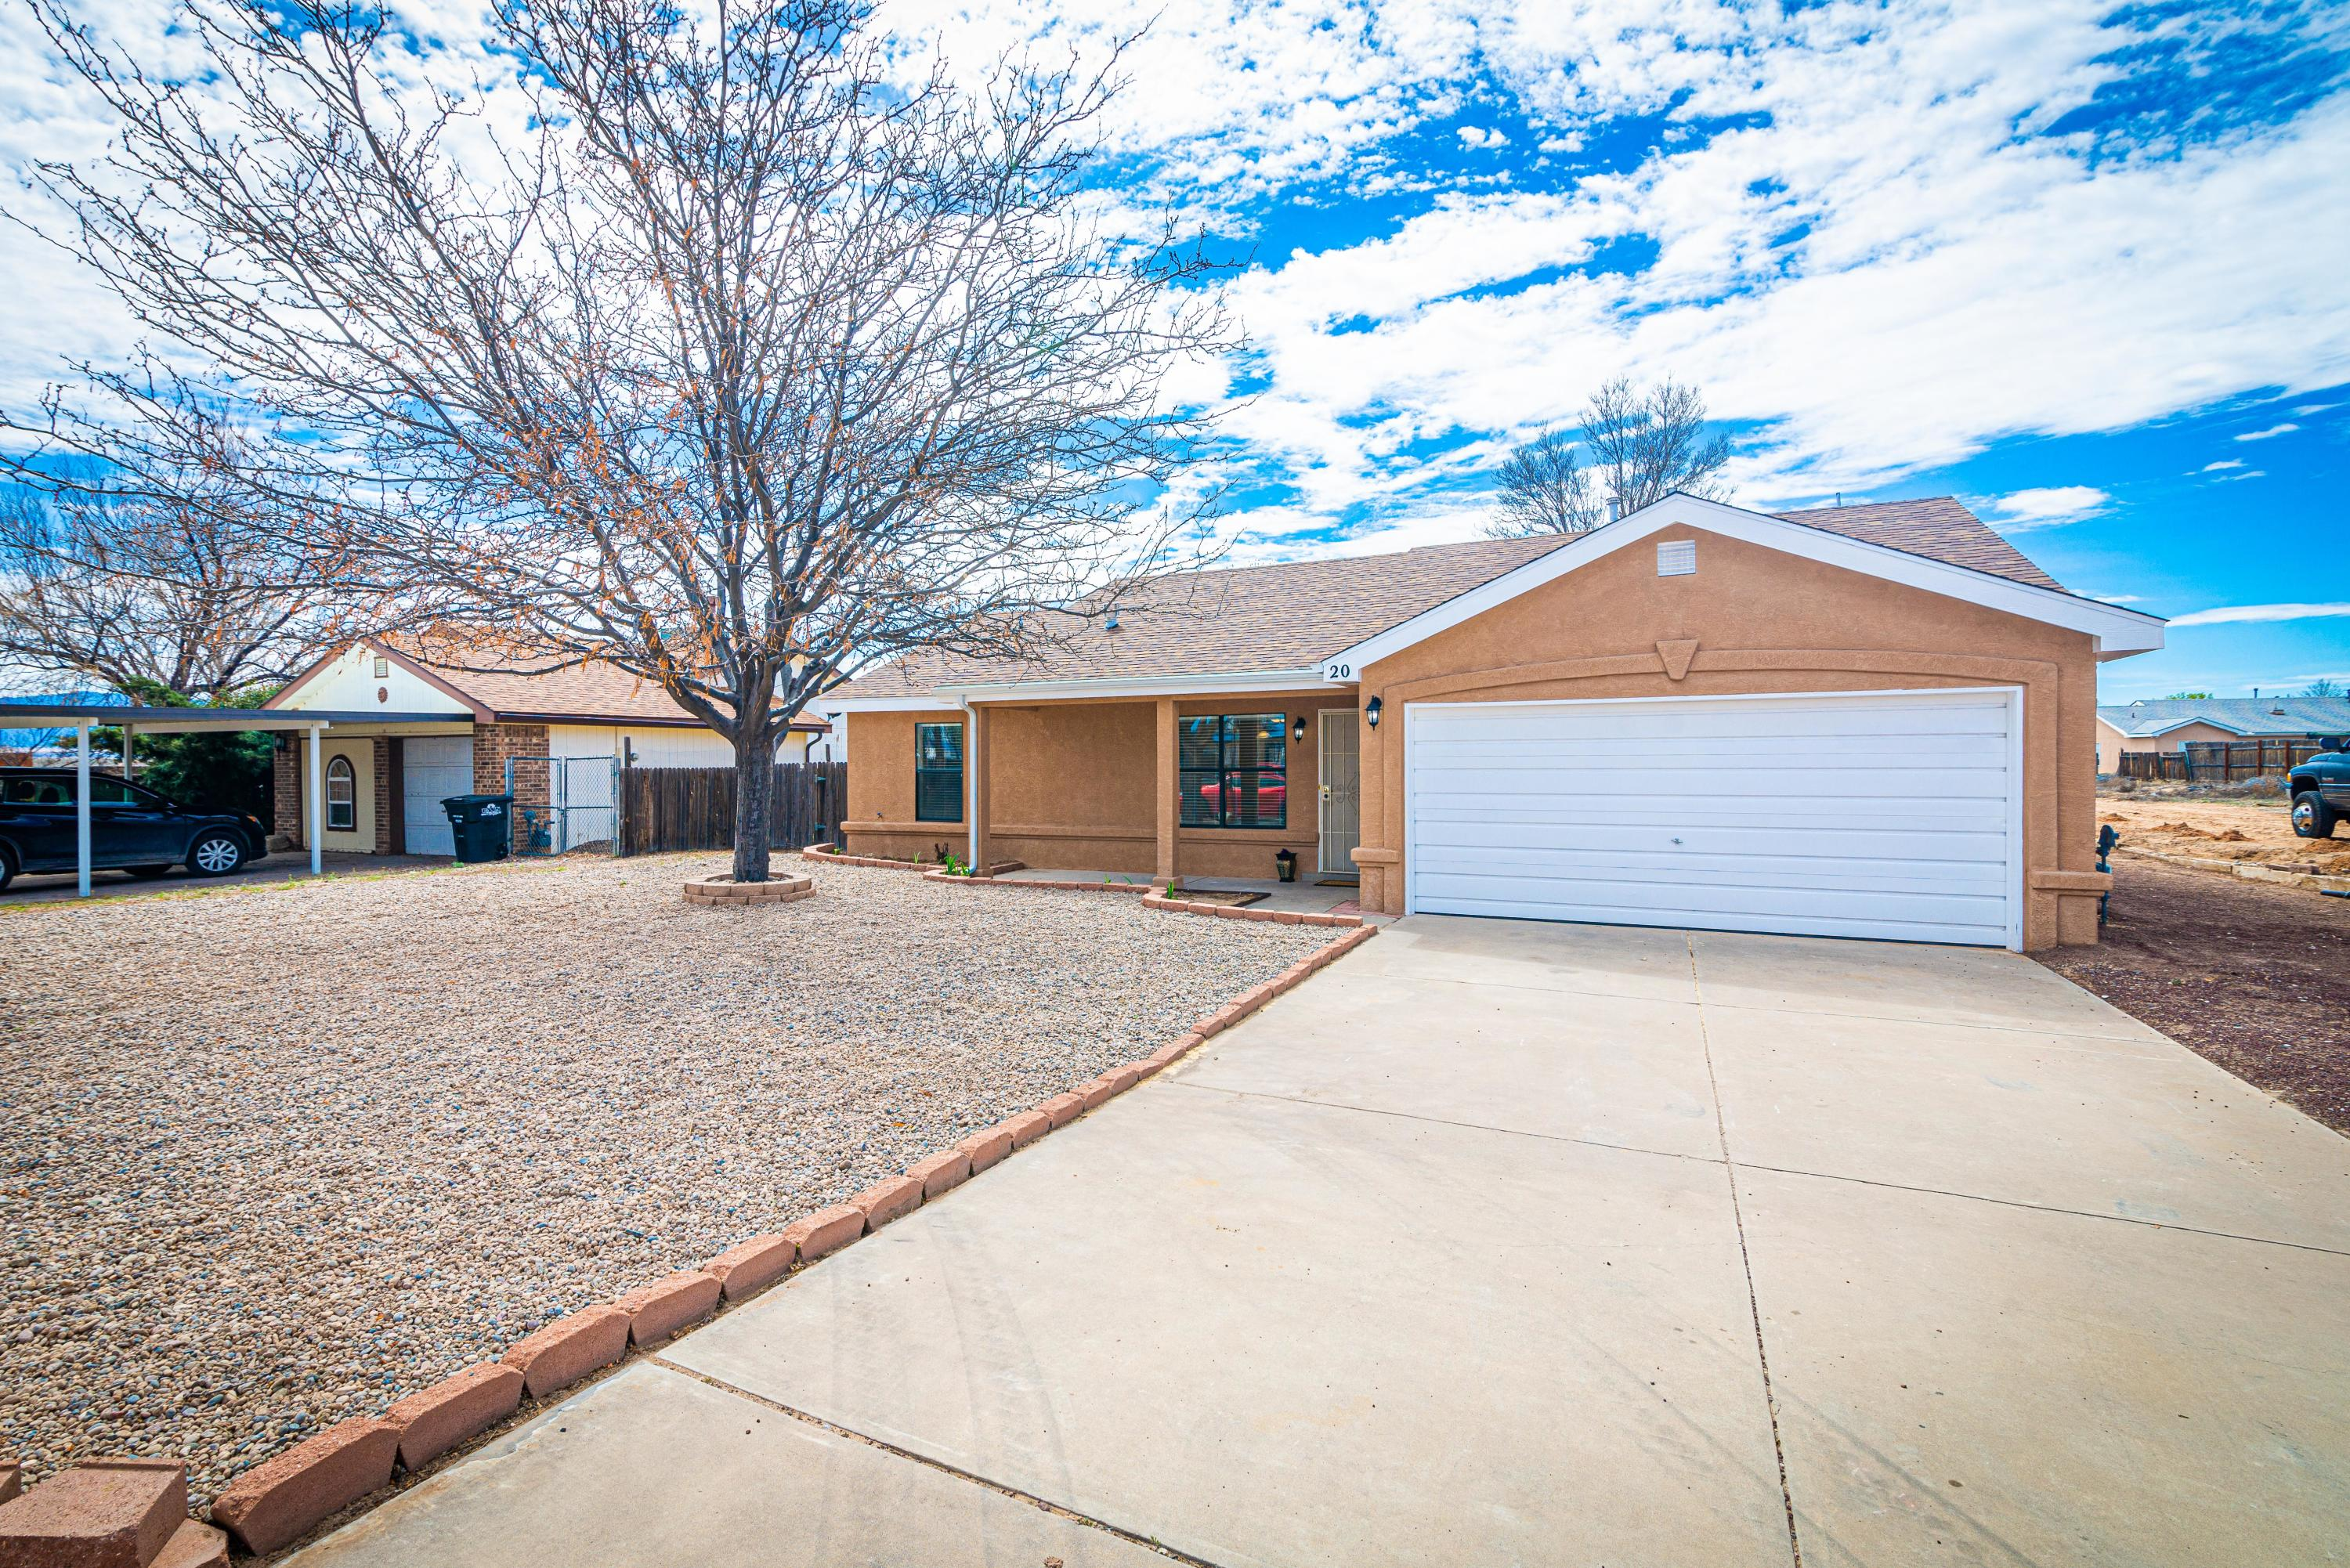 Gorgeous home sitting on a cul-de-sac awaits a new owner! Come see all the beautiful features both inside and out. Three bedrooms with a split master bedroom. Master has a walk-in closet and full bathroom. Open floor plan with bar separating kitchen and living room. Large back yard and storage shed.